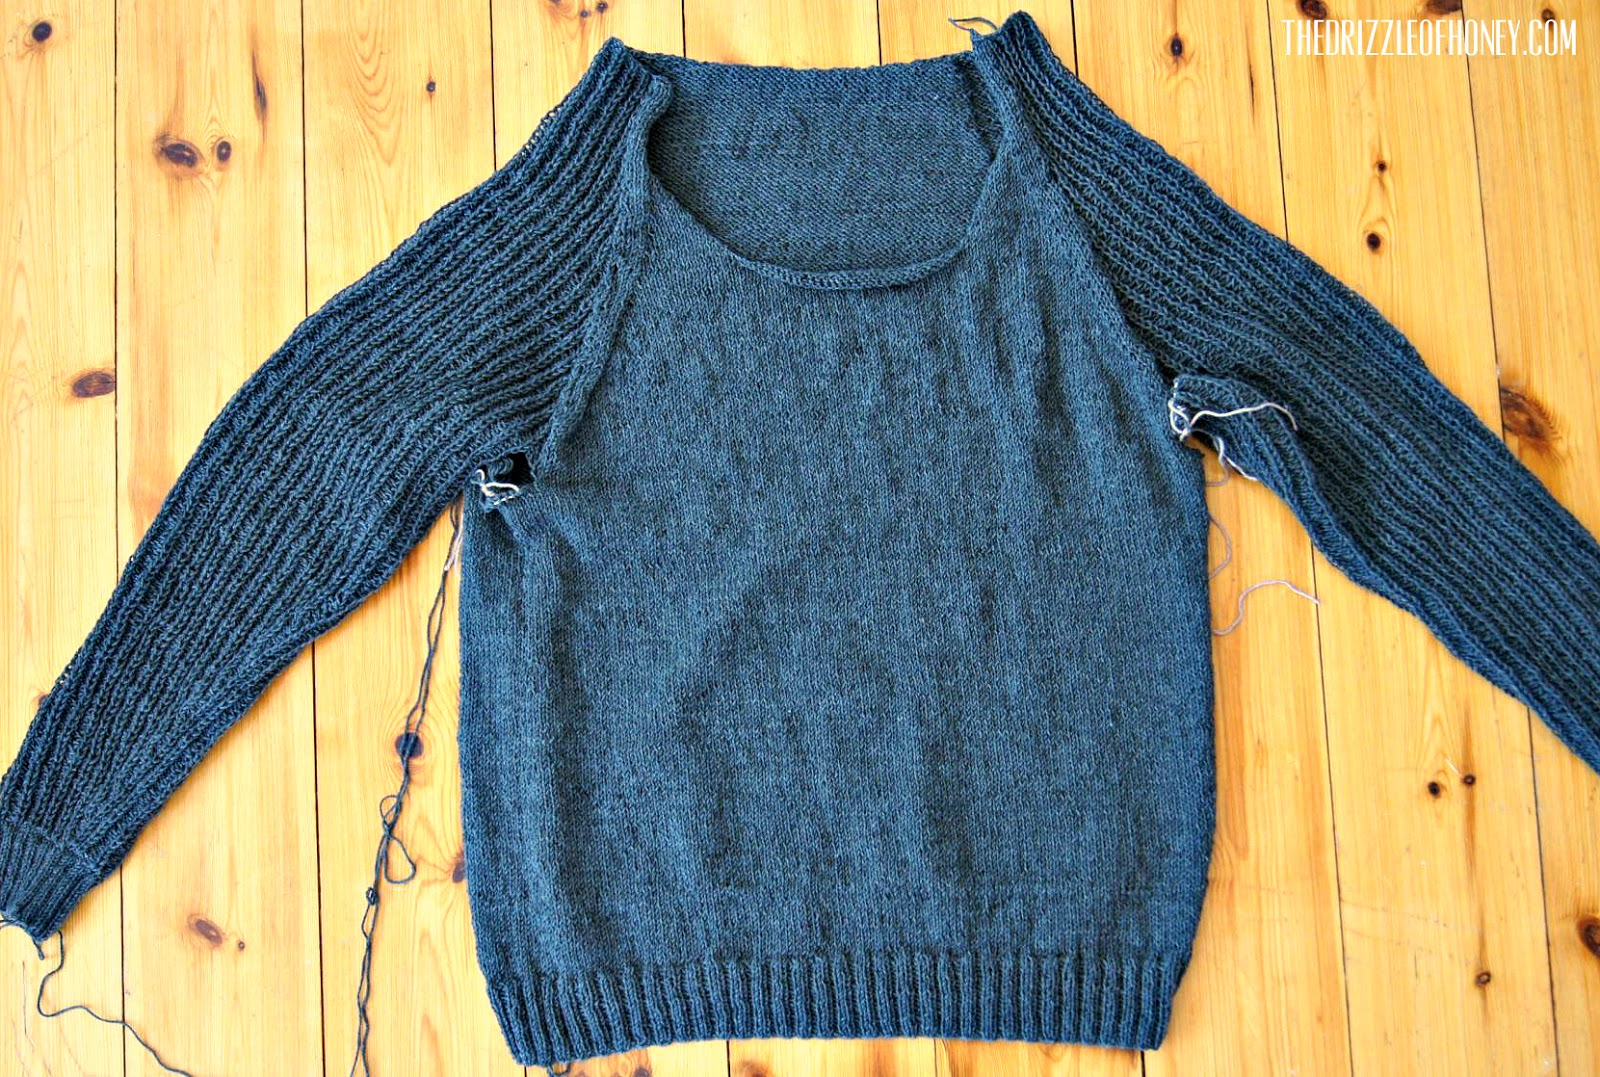 Knitting Joining Raglan Seams : The drizzle of honey christmas present wip joining a